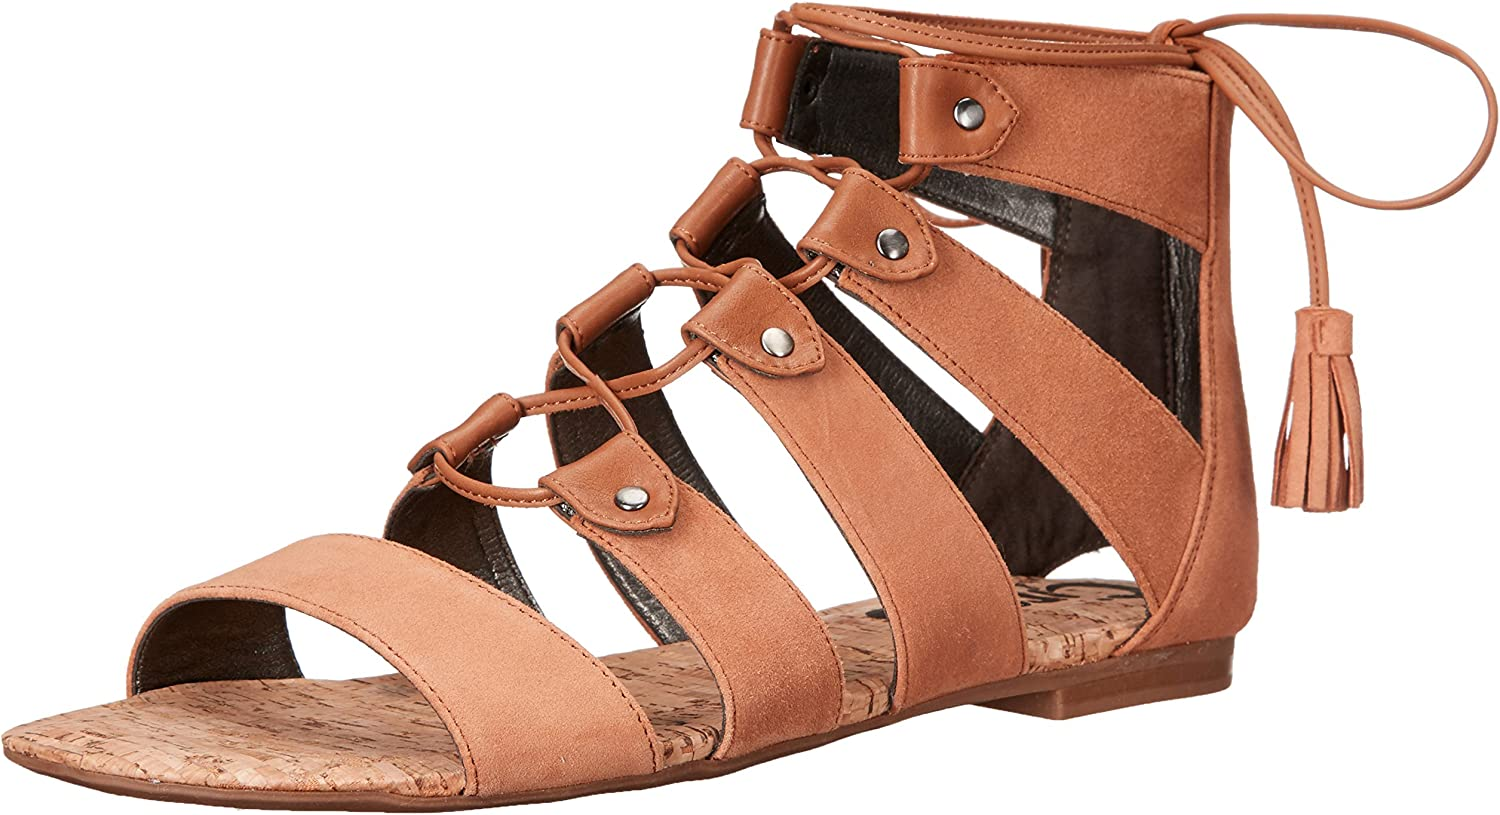 Circus by Sam Edelman Women's Gibson Dress Sandal